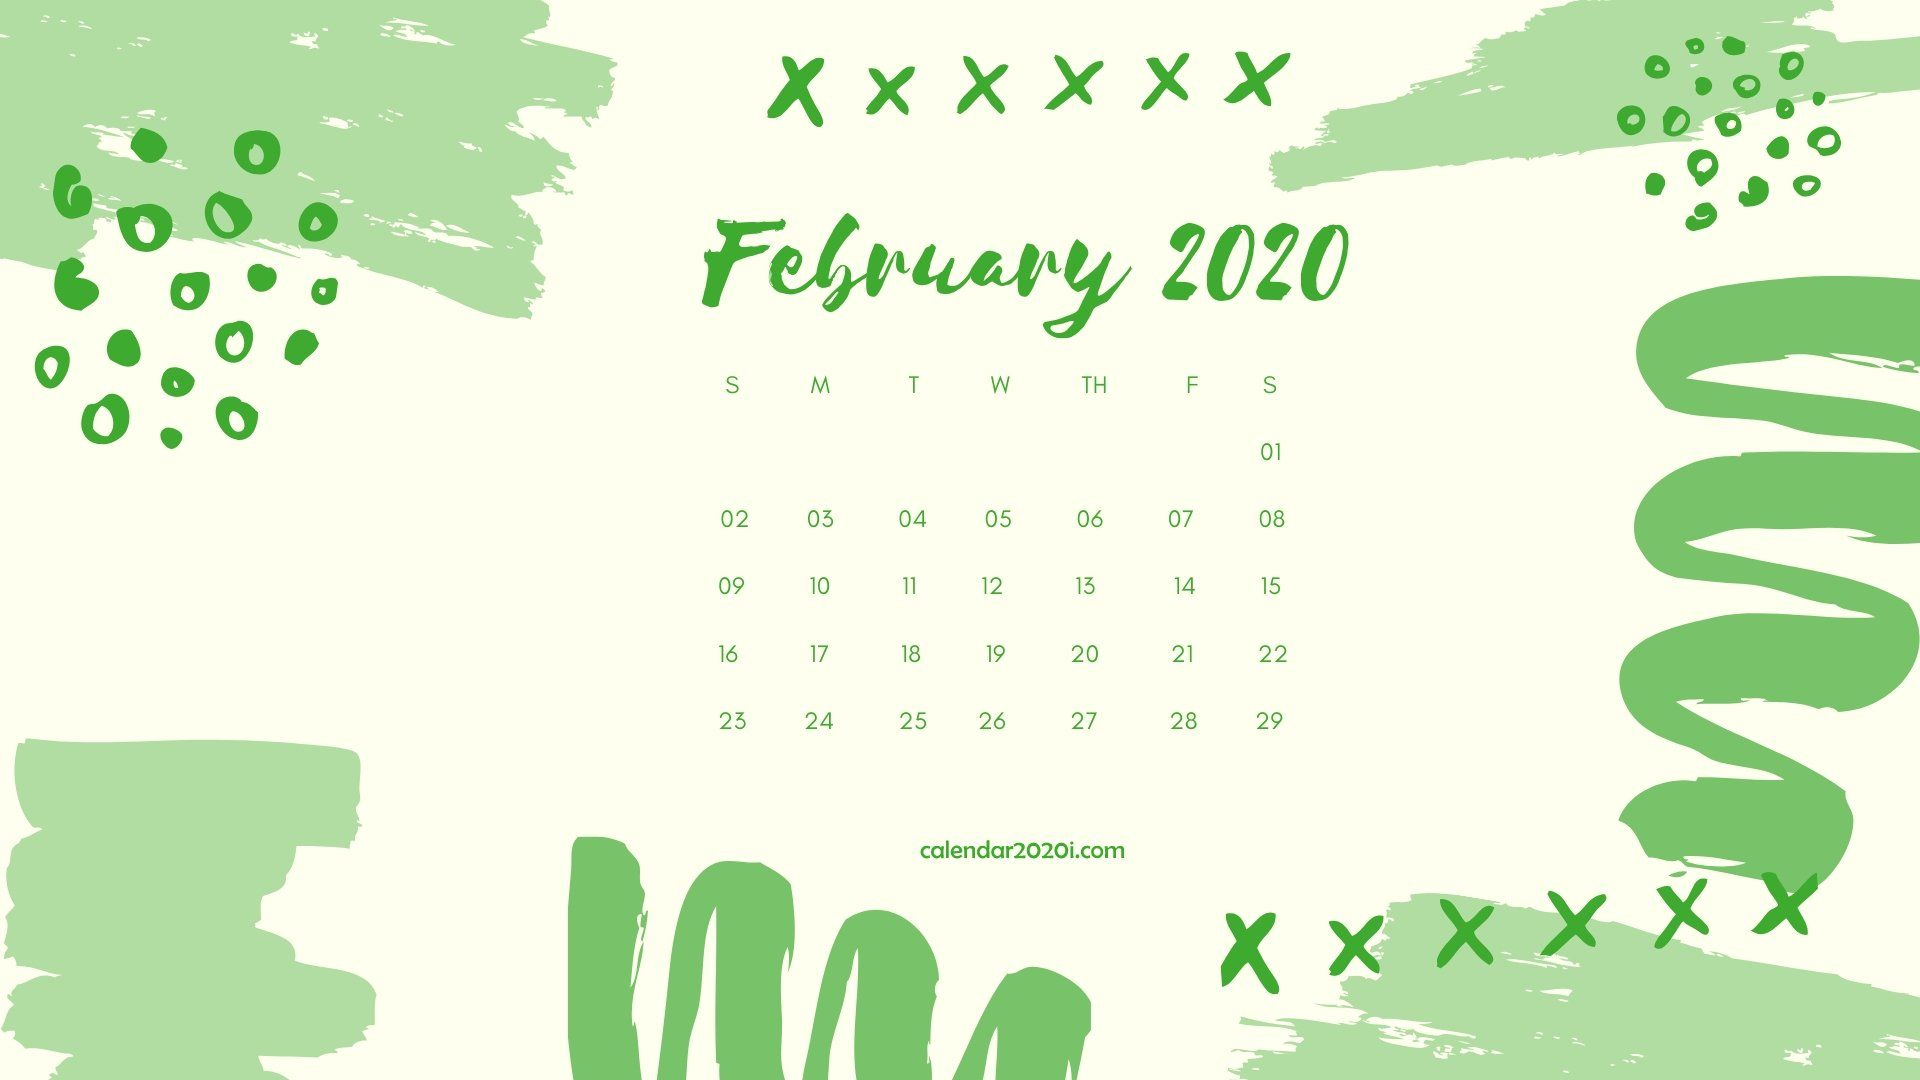 February 2020 Calendar Desktop Wallpaper July calendar January 1920x1080